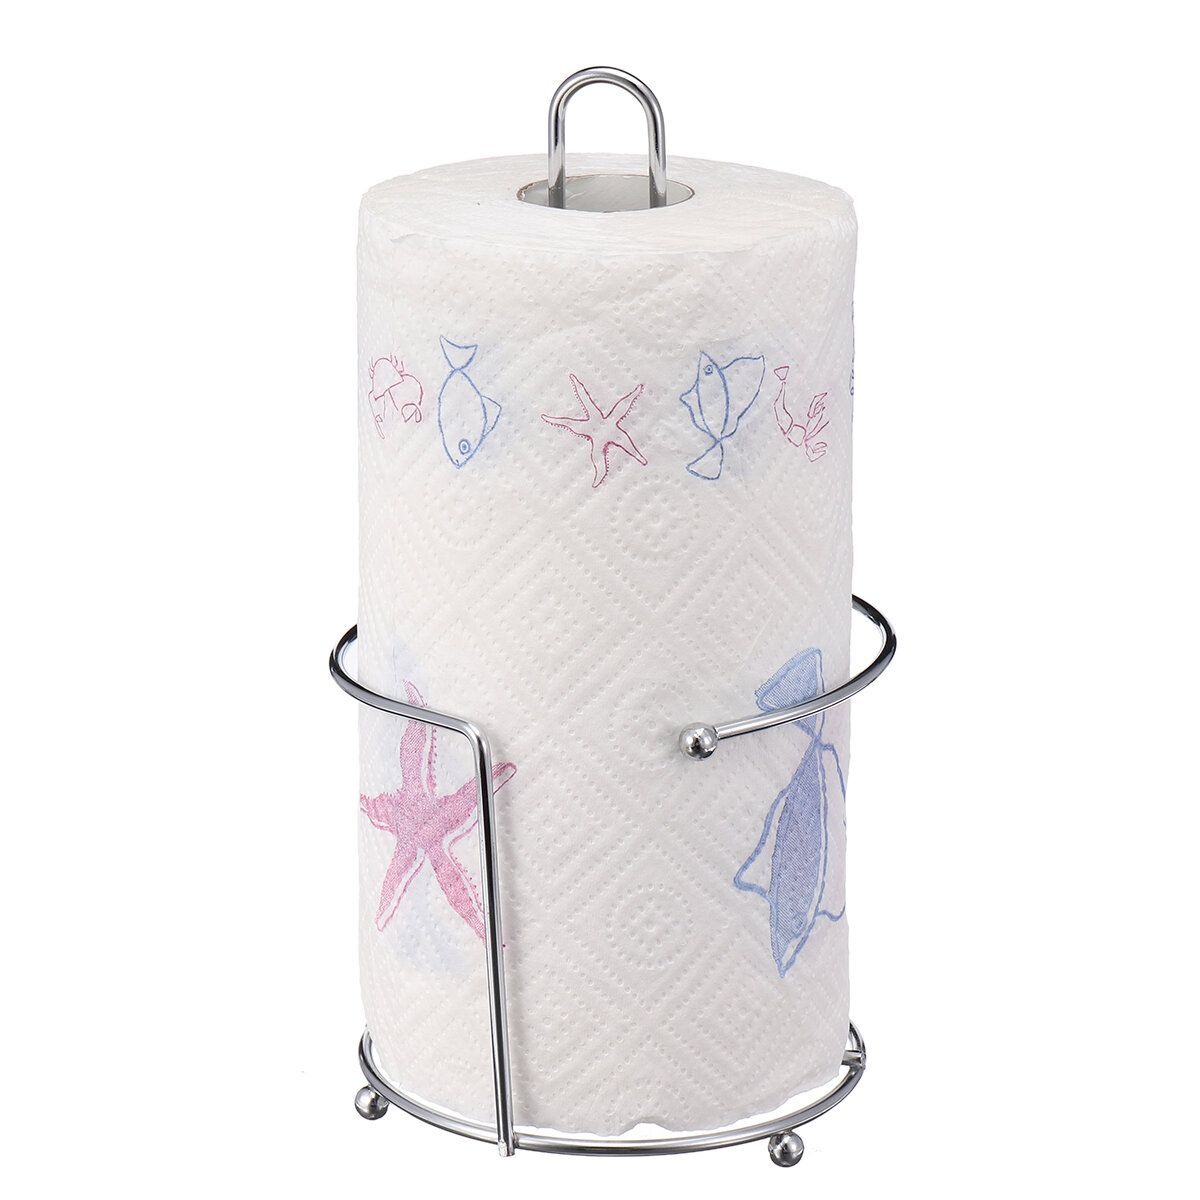 100% BRAND NEWThis Kitchen Roll Pole will make a stylish addition to any kitchen.It's strong and durable design keeps kitchen towels protectedfrom spillages.Features:Stylish and functional paper towel holderBeautiful brushed Stainless Steel finishStrong and durableBase protects your work surfacesDimensions: 26cm x 14cm x 14cm